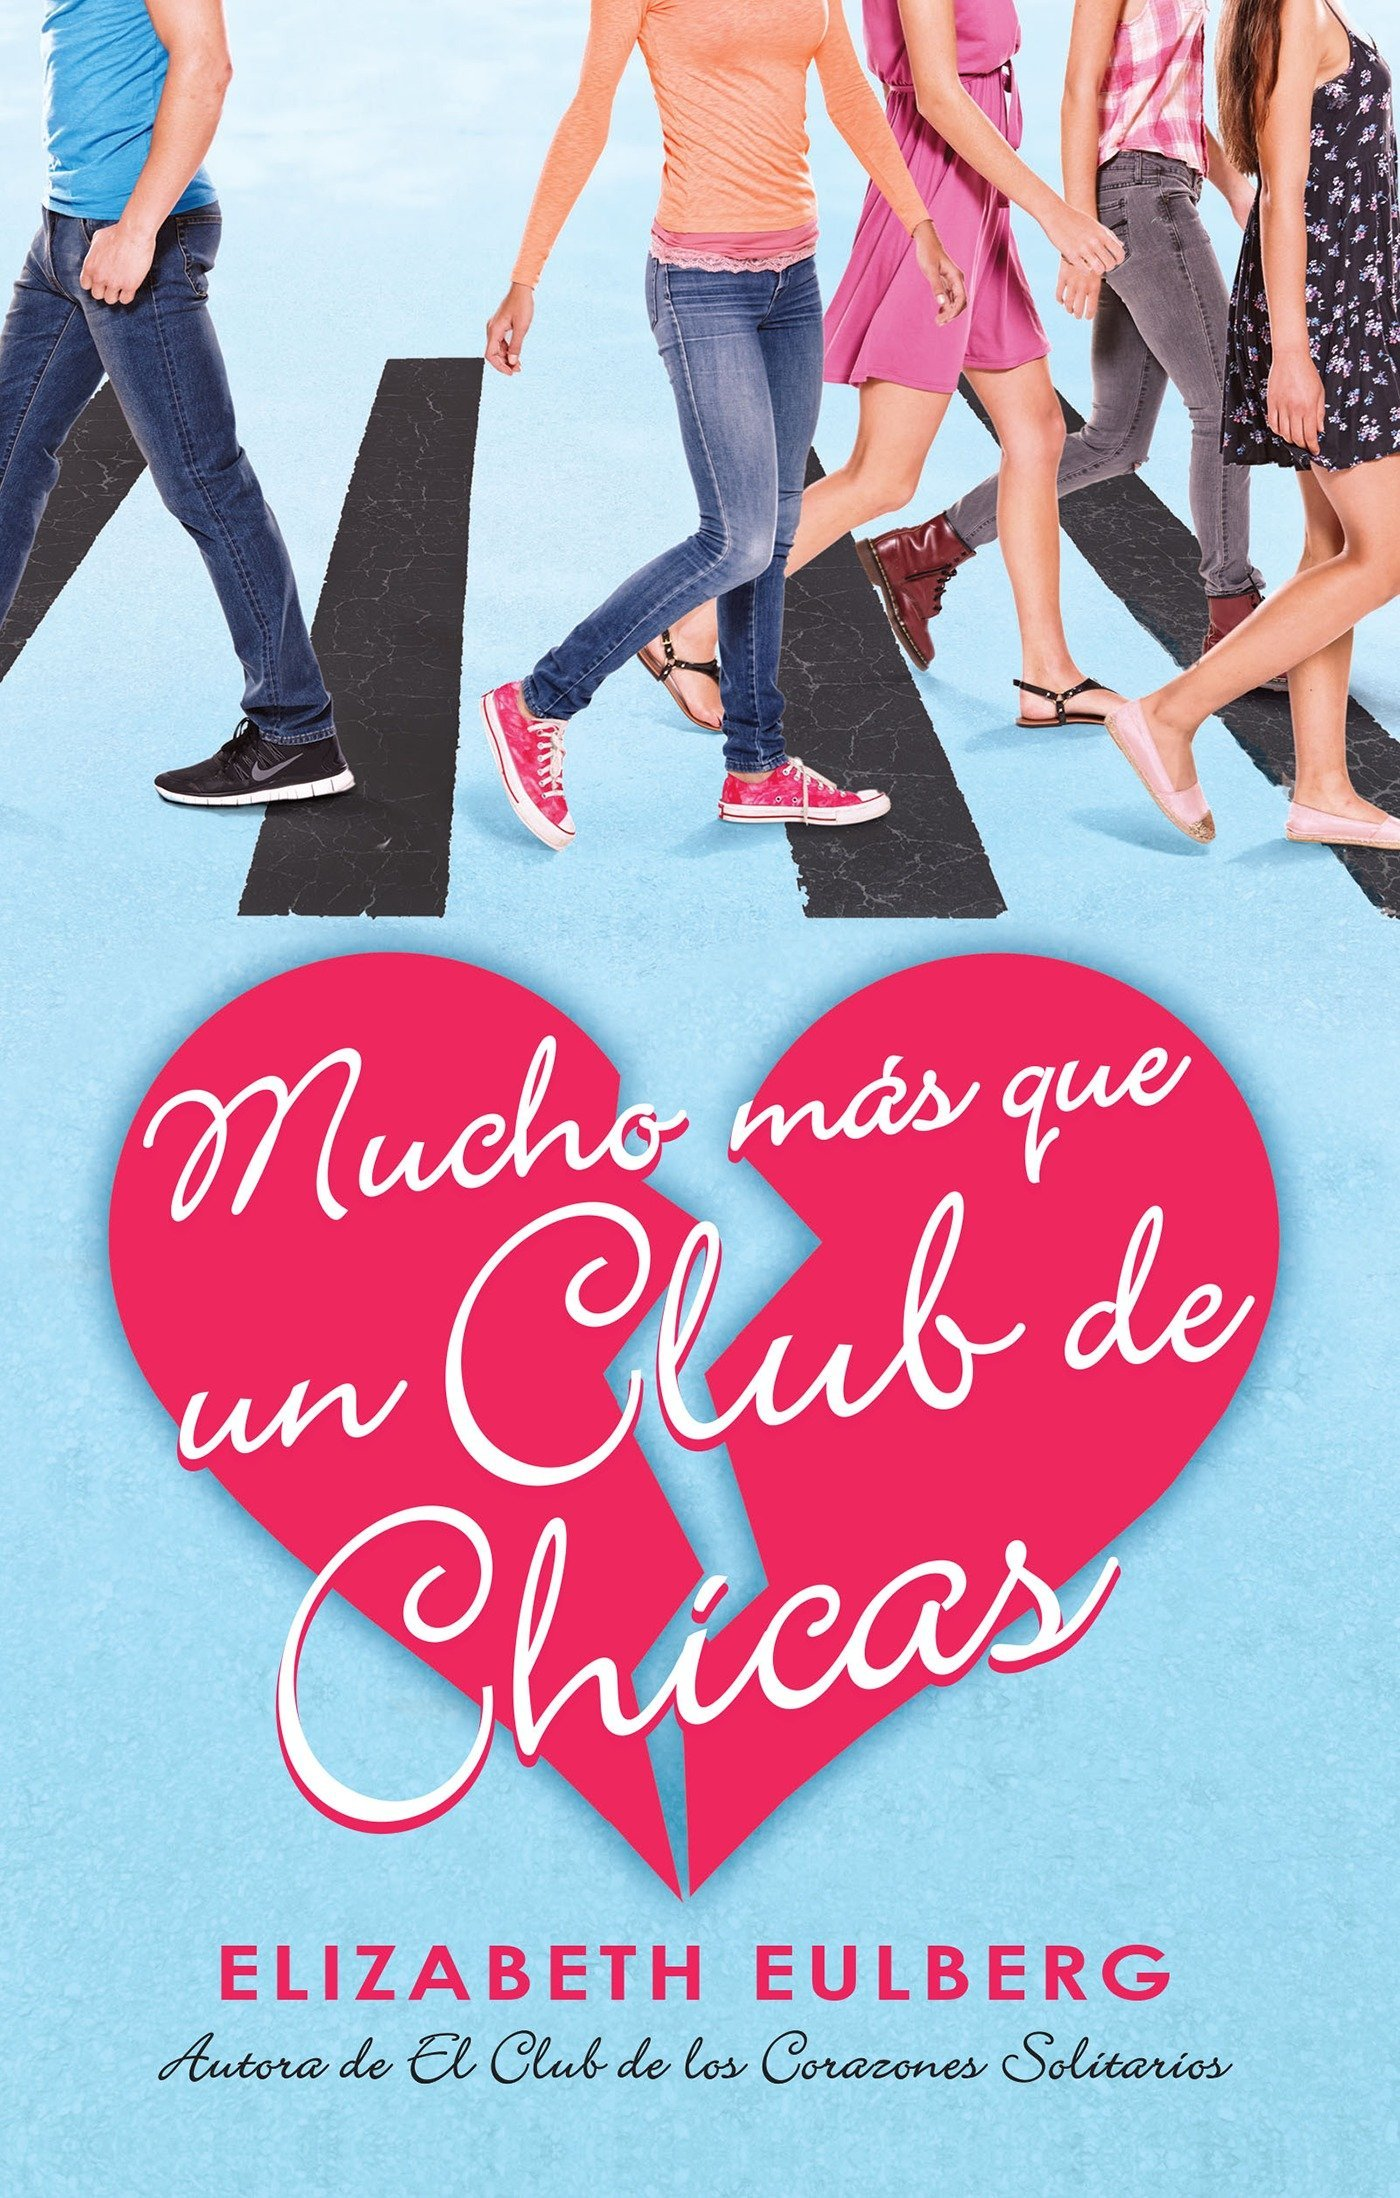 Amazon.com: Mucho más que un club de chicas. El club de los corazones solitarios / We Can Wo rk It Out. The Lonely Hearts Club (Spanish Edition) ...